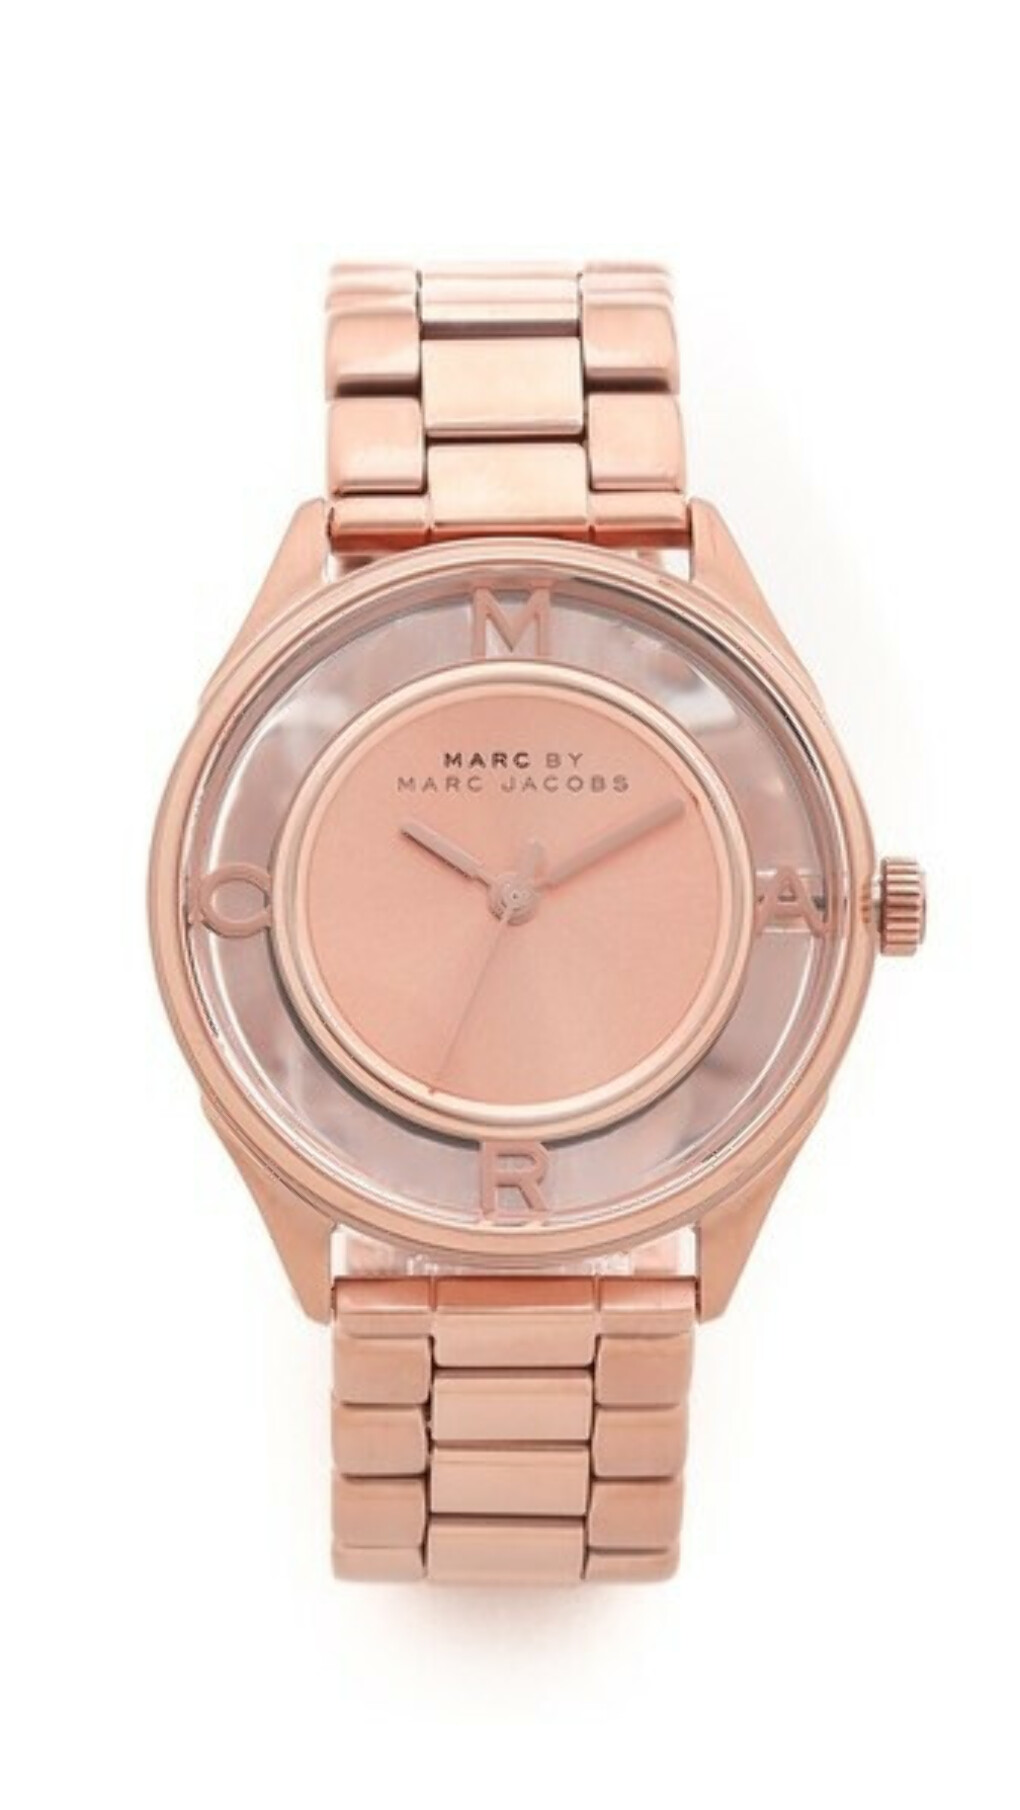 Marc by Marc Jacobs                                            Часы Tether